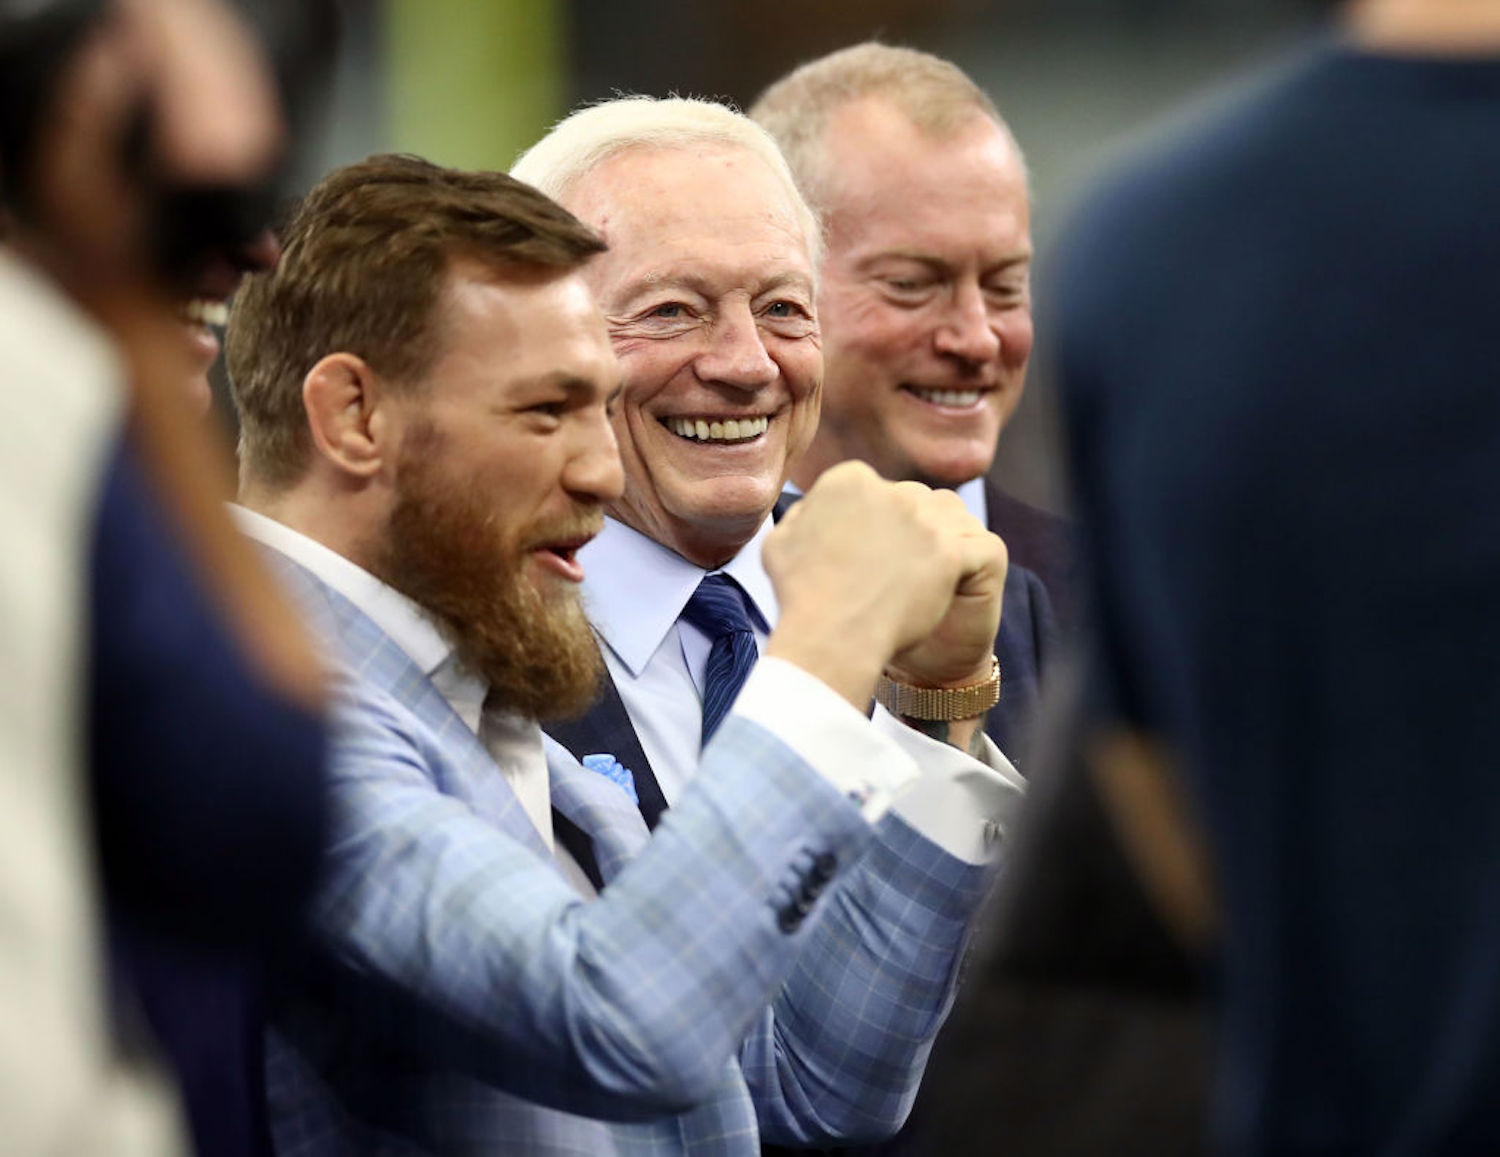 Jerry Jones is a big fan of Conor McGregor, and the Cowboys' owner and GM wants to host the UFC star's next fight in Dallas.